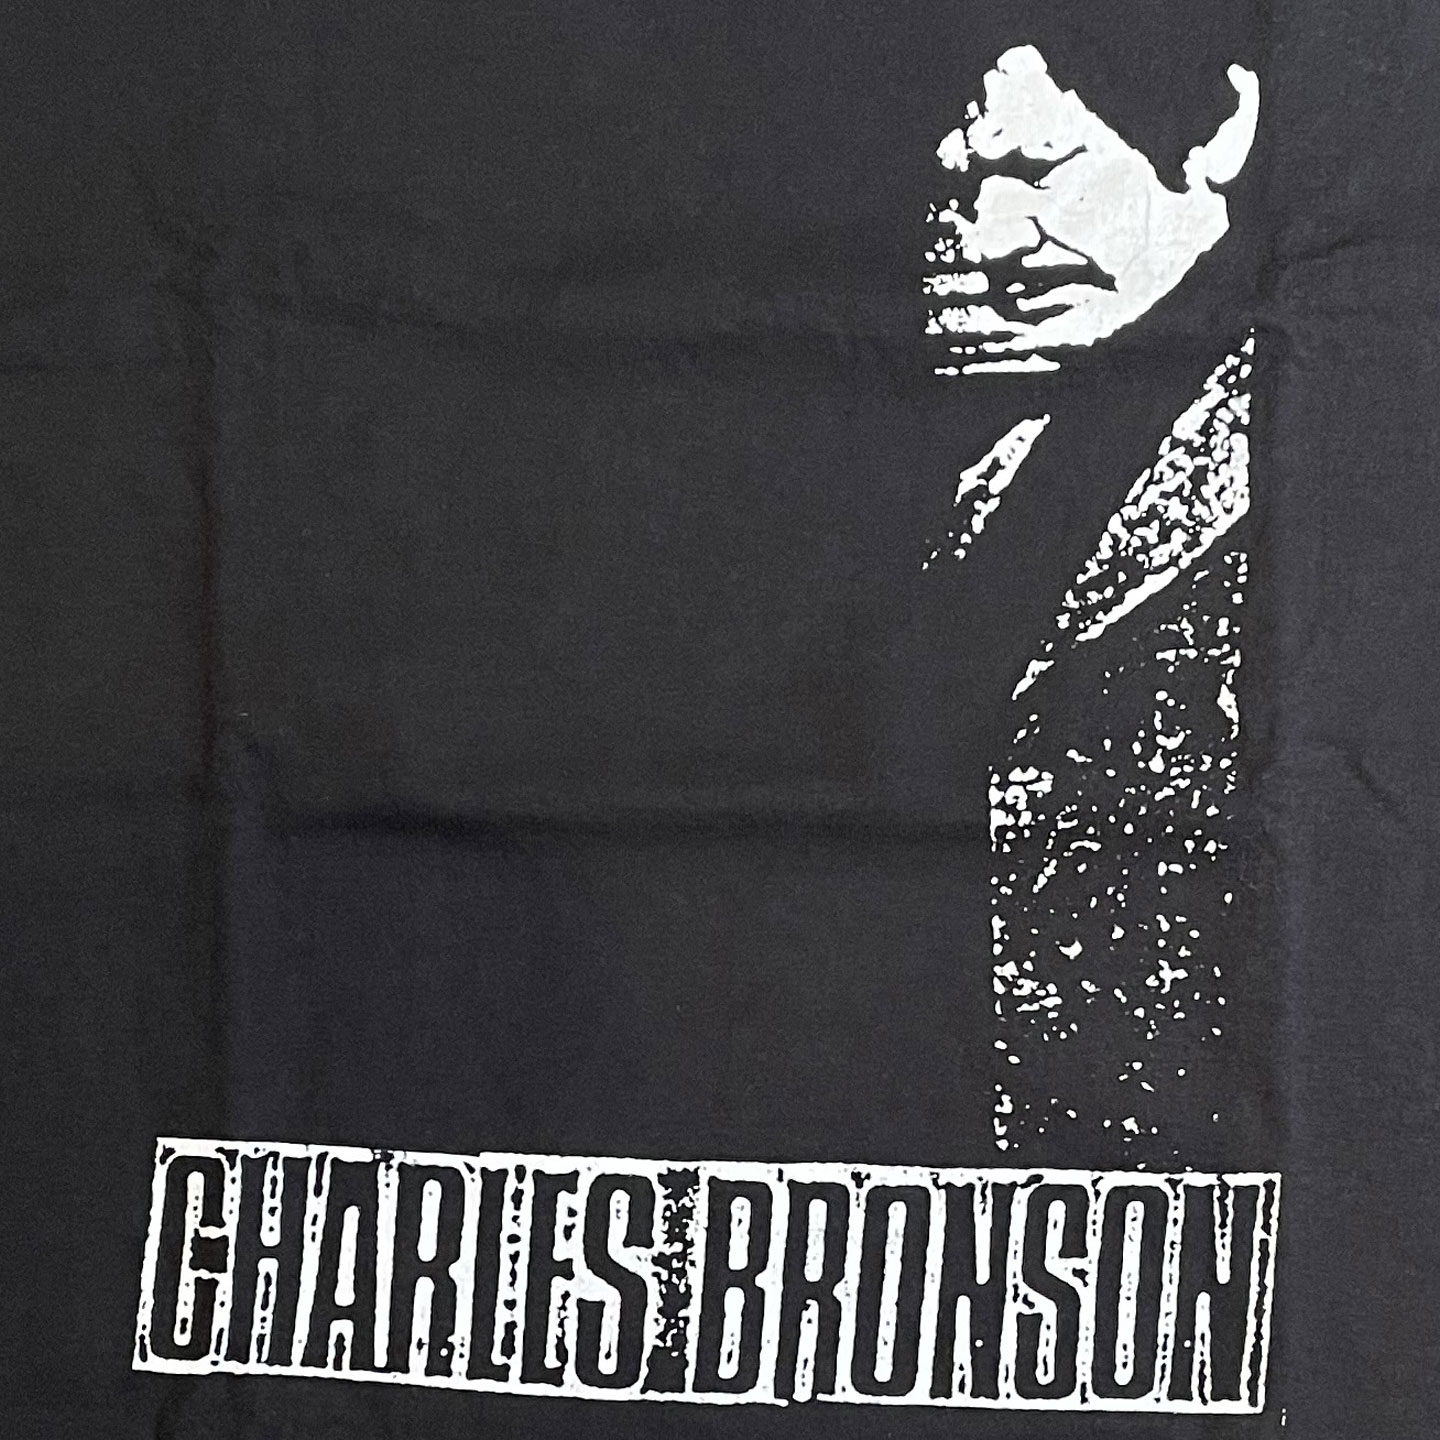 CHARLES BRONSON Tシャツ YOUTH ATTACK!